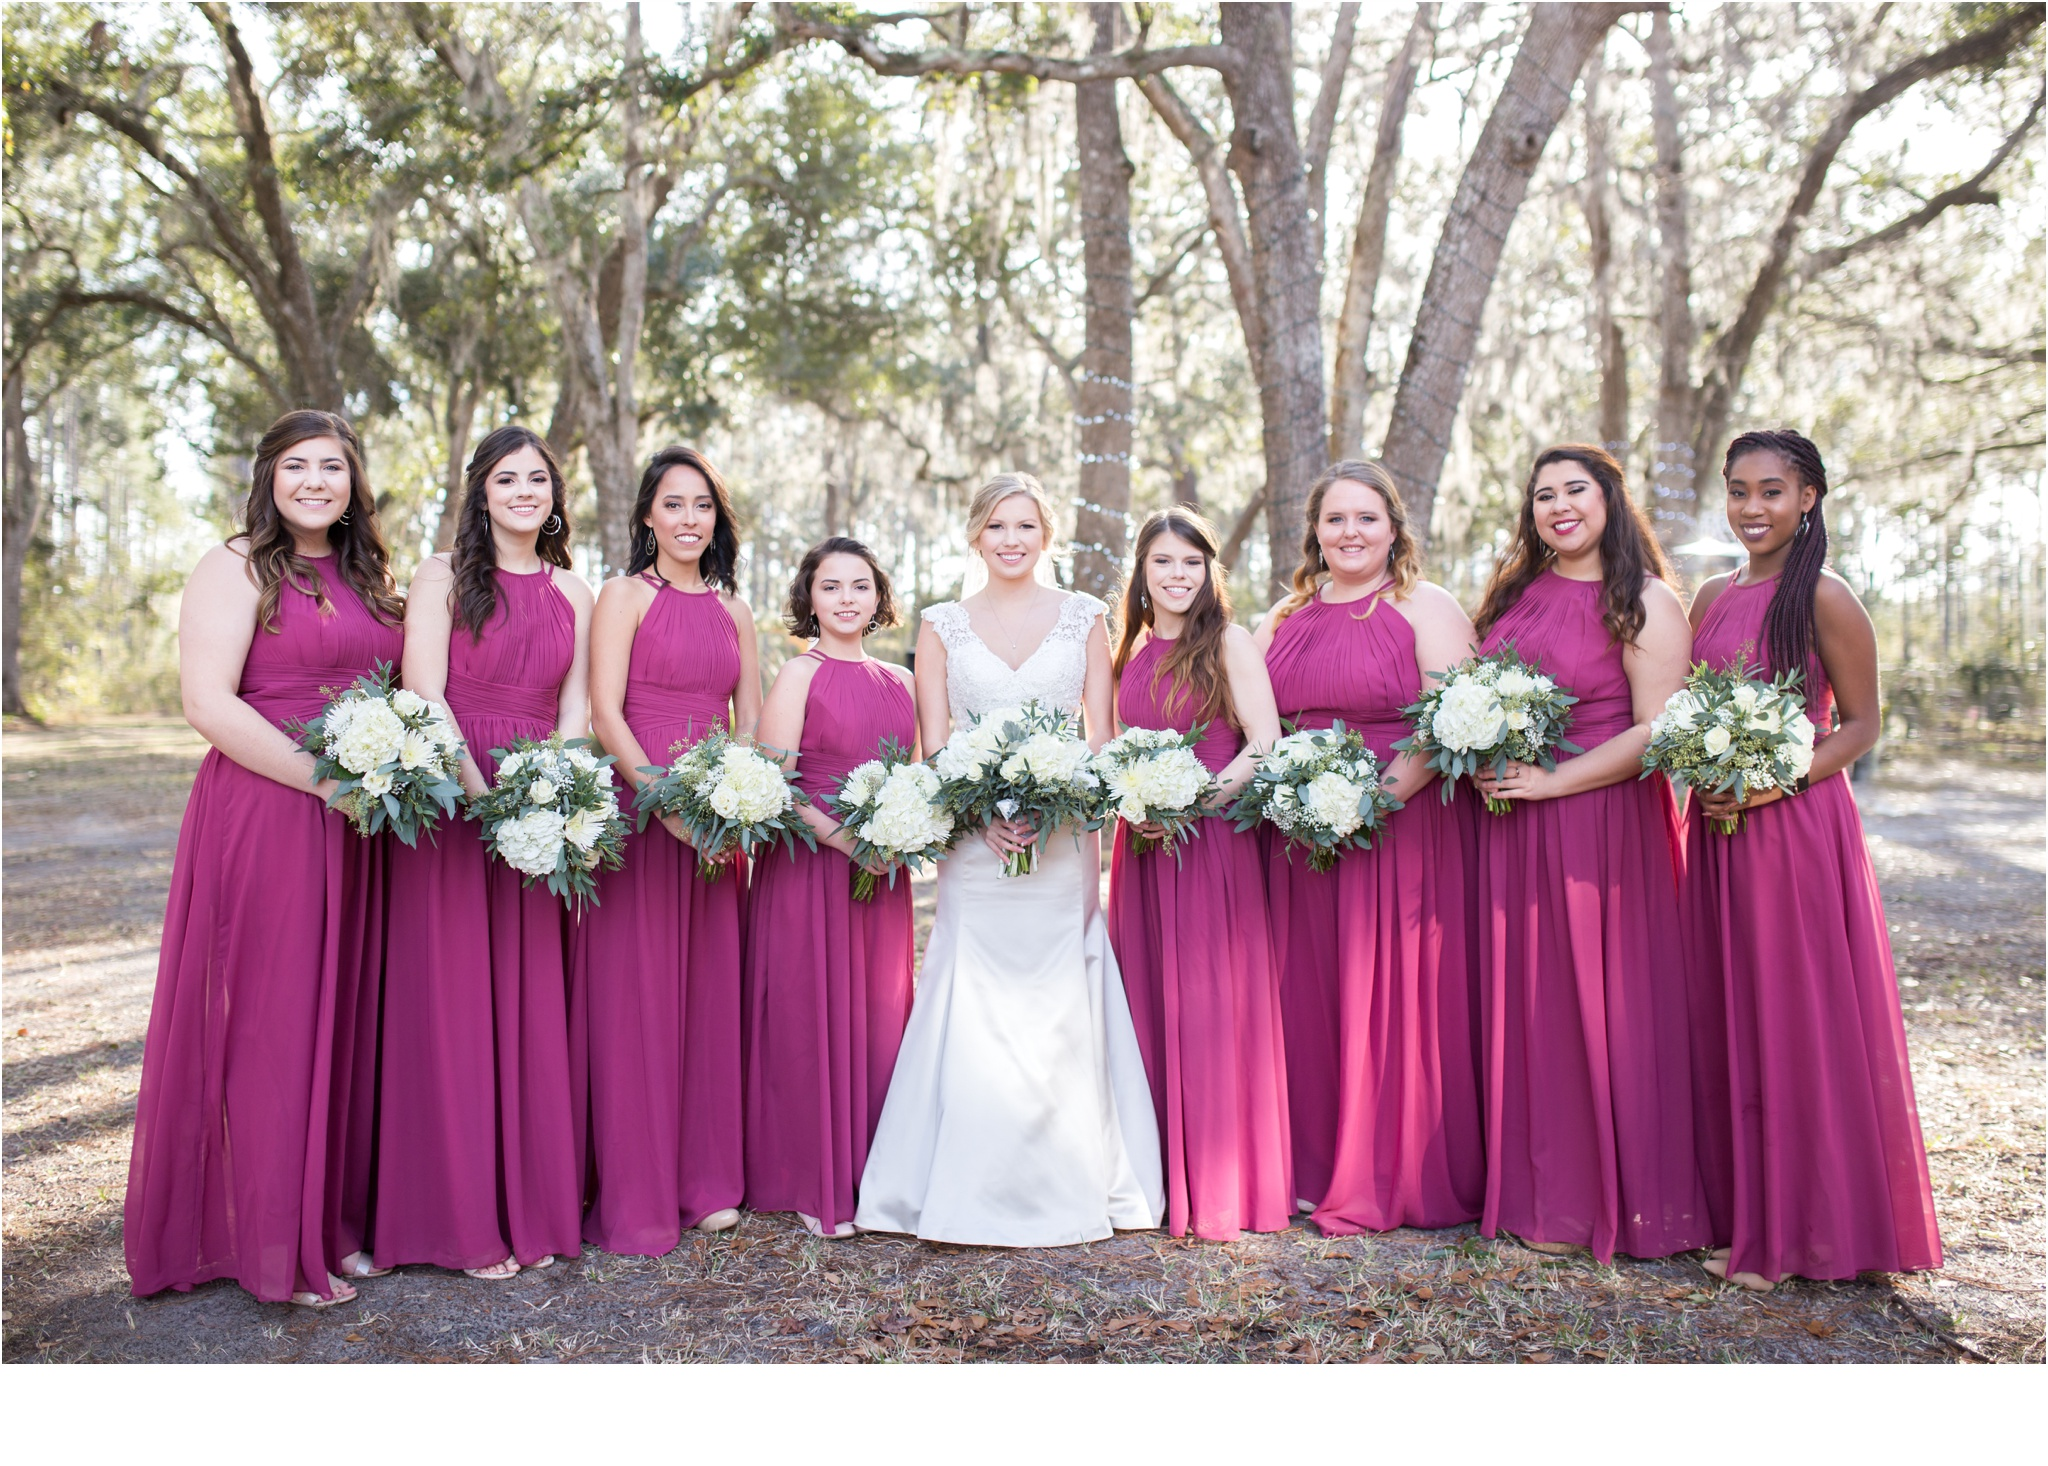 Rainey_Gregg_Photography_St._Simons_Island_Georgia_California_Wedding_Portrait_Photography_0510.jpg